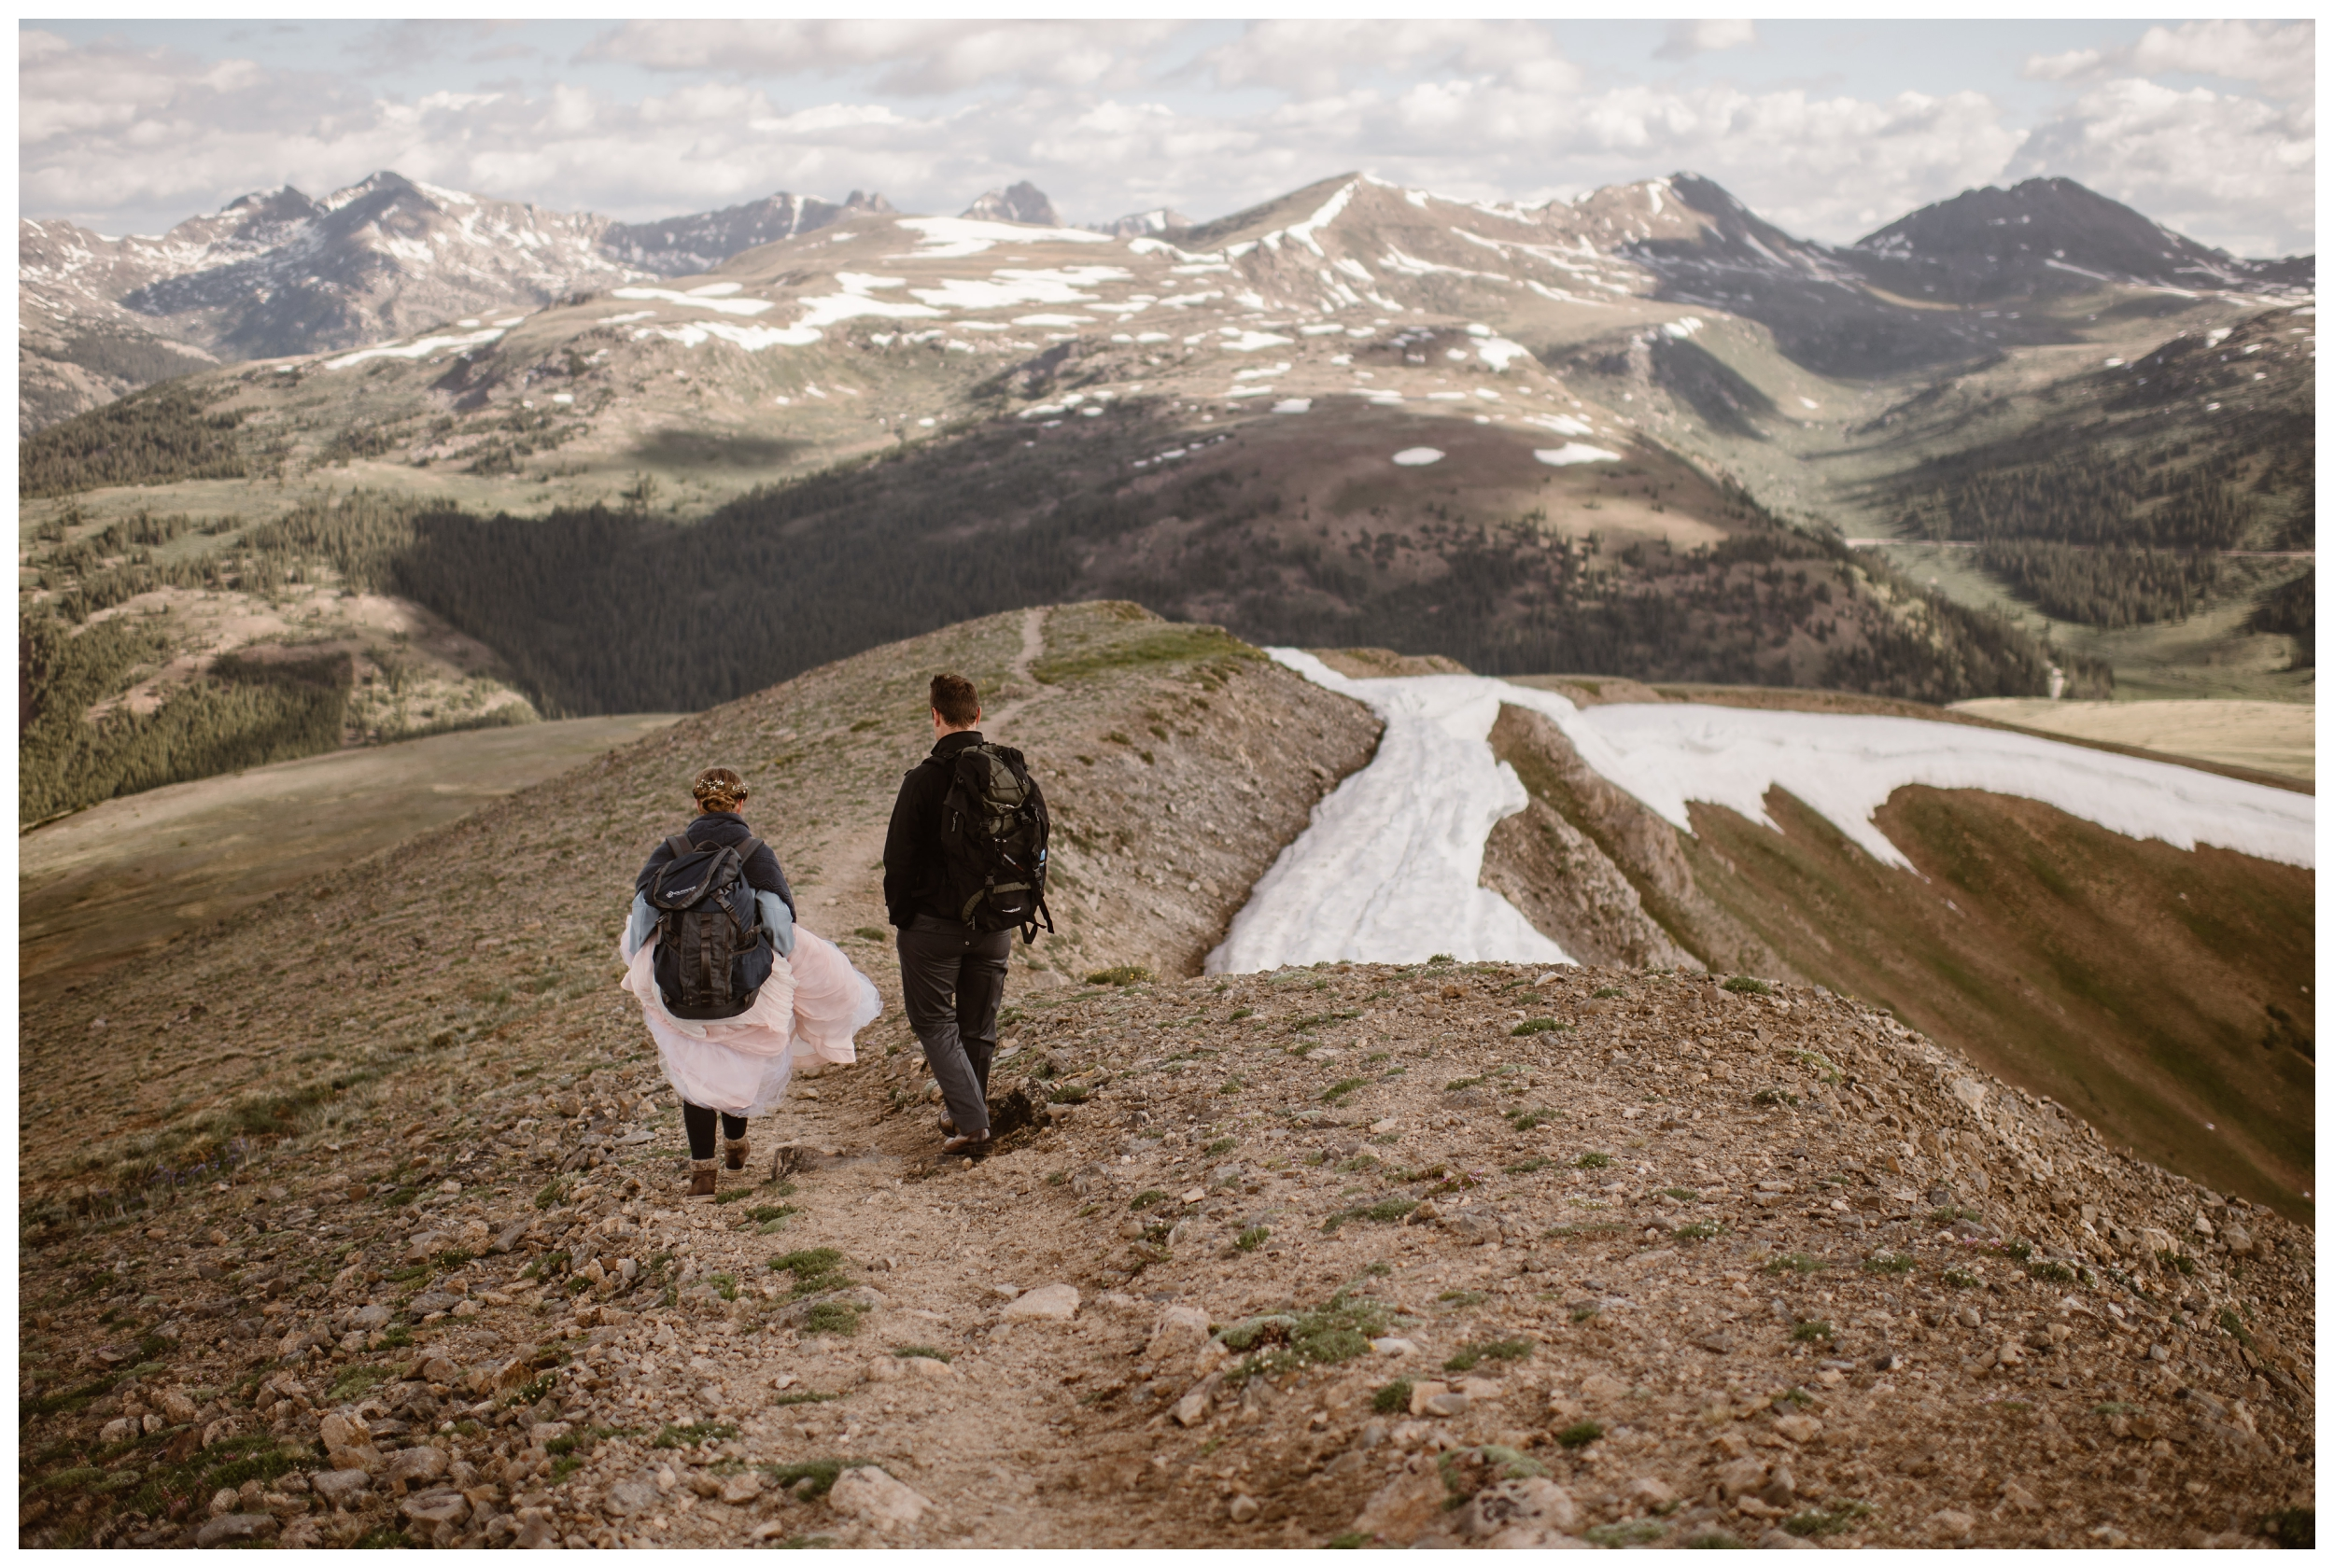 Marcela and Vasily hike down following their adventure elopement ceremony on the top of Independence Pass, outside Aspen Colorado. Photo by Maddie Mae, Adventure Instead.